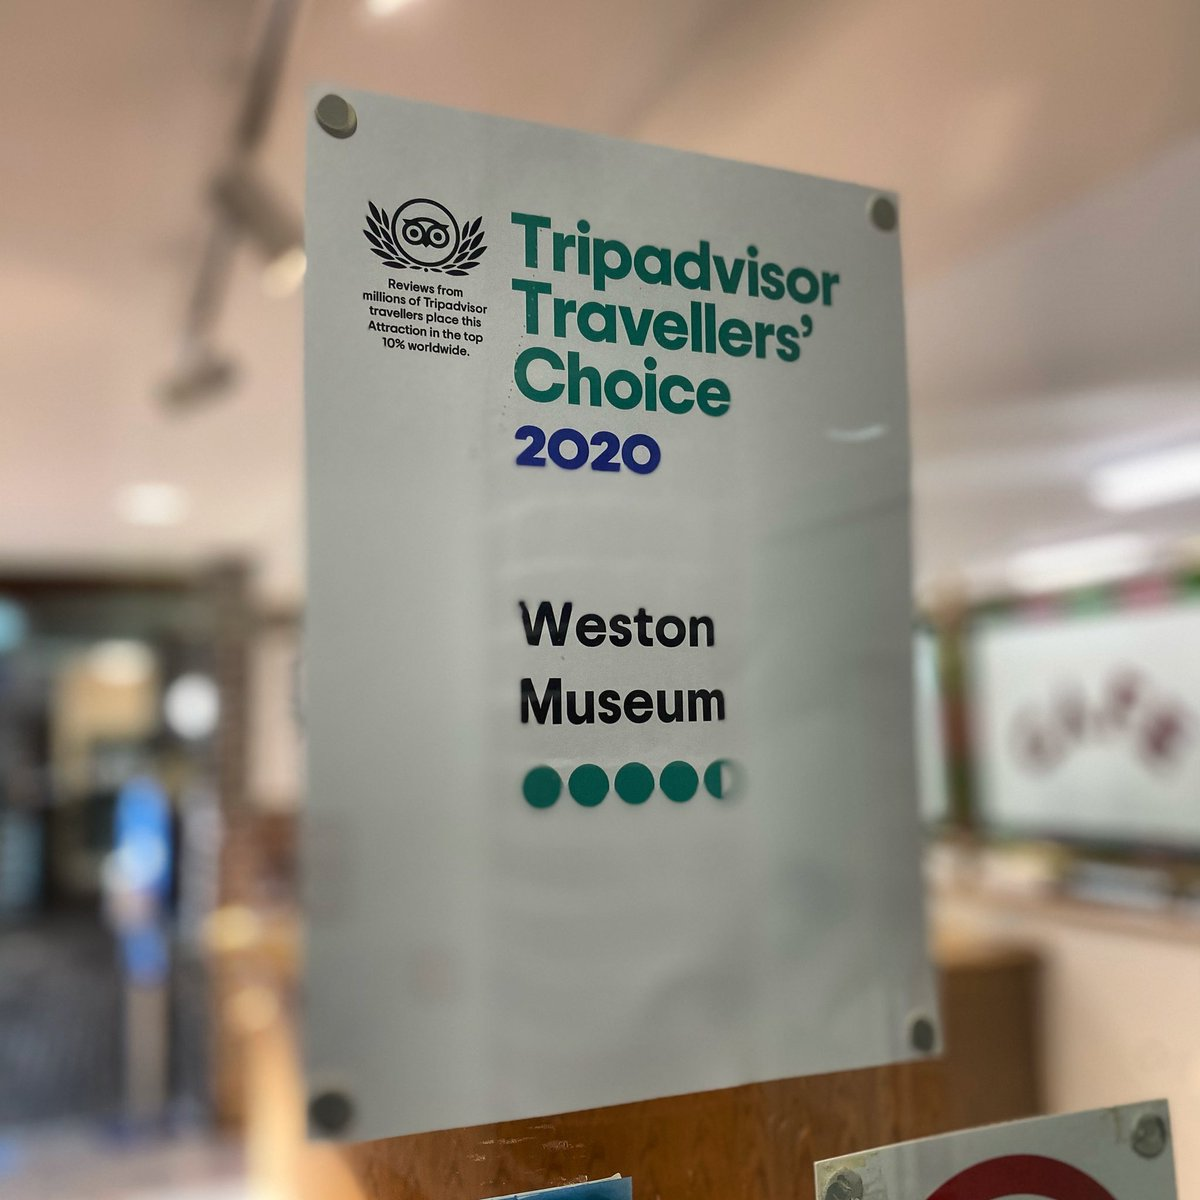 We are pleased to announce that we have received our 2020 Traveller's Choice Award from Tripadvisor!   #WestonMuseum #TellYourFriends #FreeAdmission #Tripadvisor #TravellersChoice #HighlyRecommended #GlowingReviews https://t.co/LQswDIpgBW